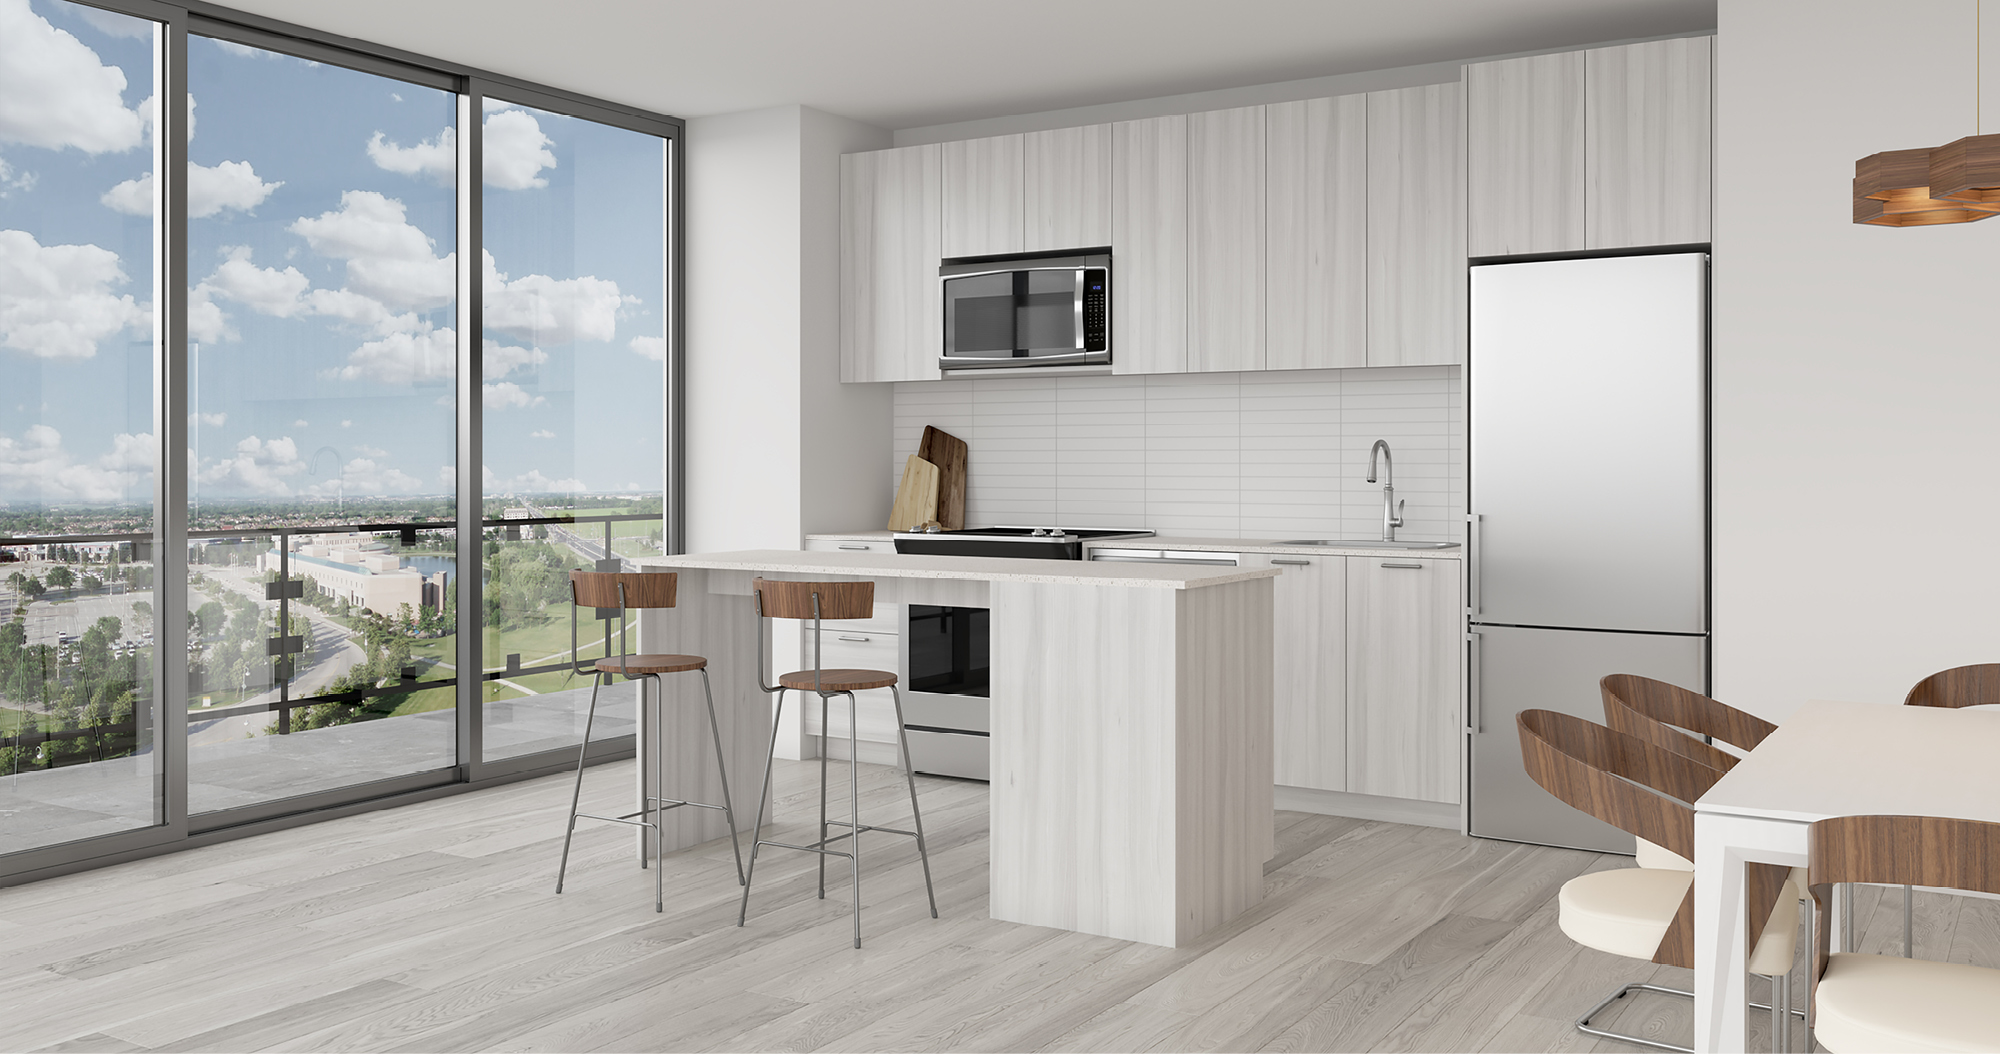 Register online to attend the grand opening of The Davis Residences at Bakerfield this September in Newmarket